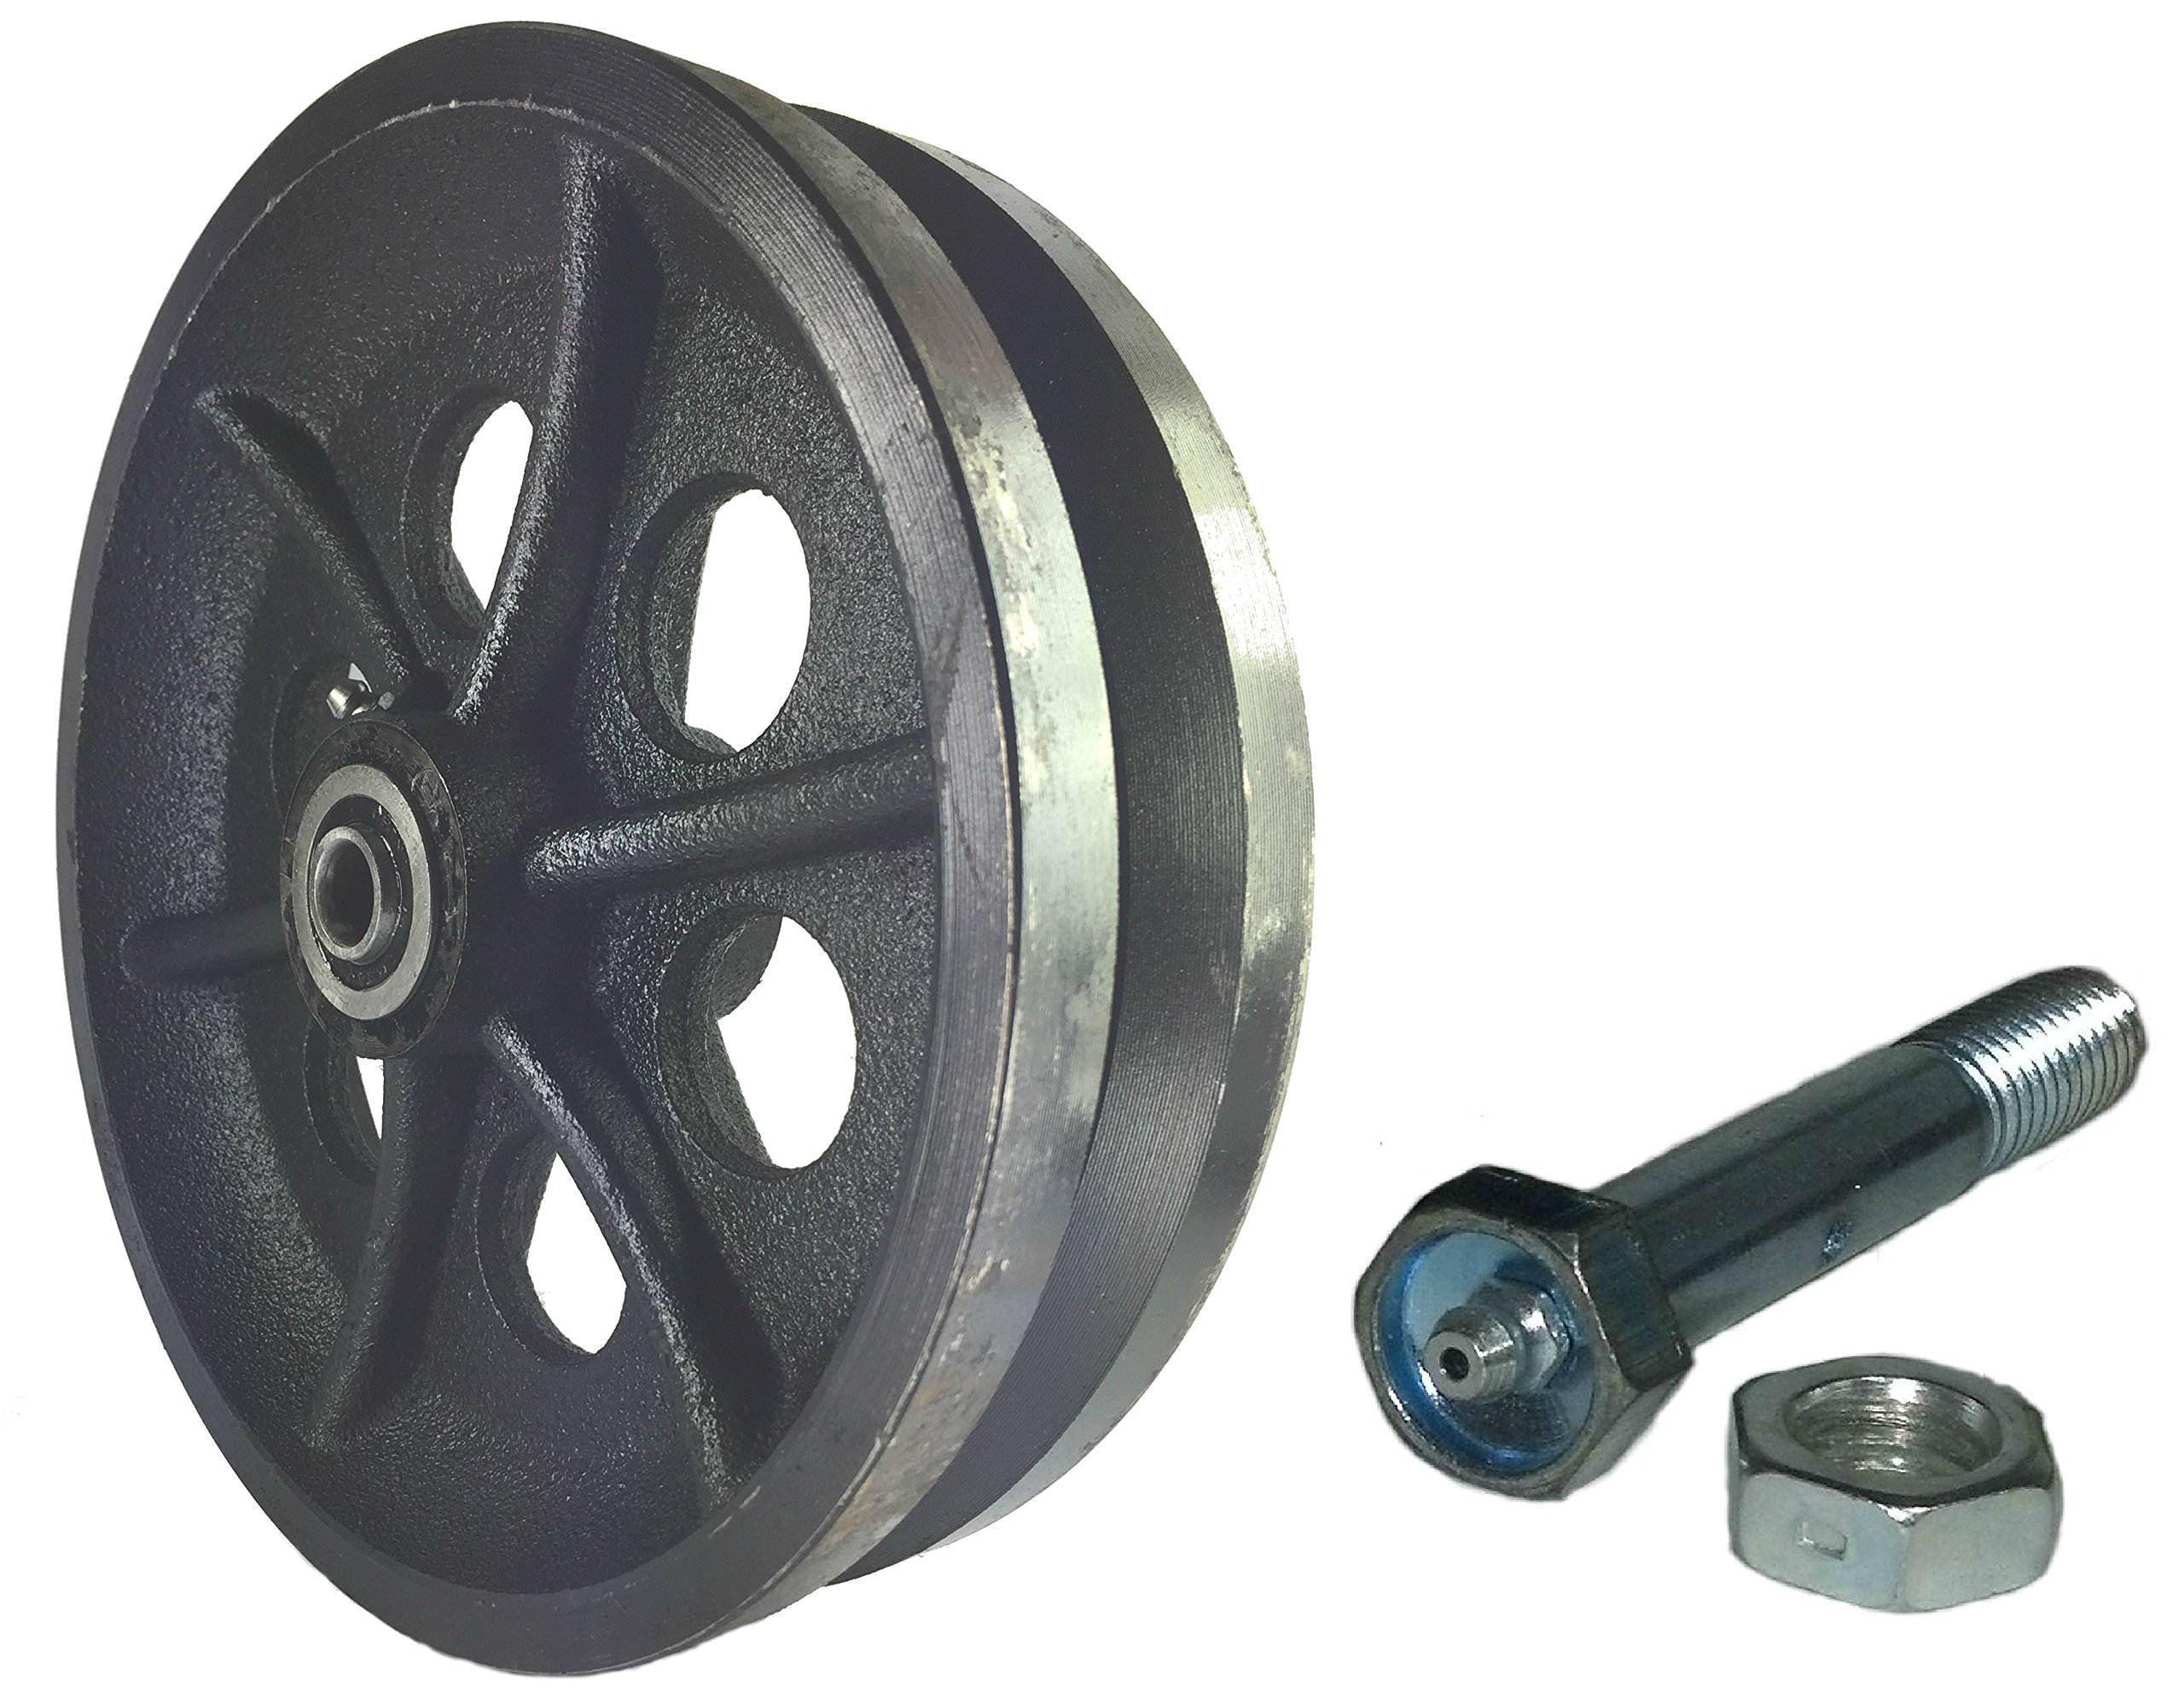 Sliding Barn Door Cast Iron Wheel Kit 8'' X 2'' with 1/2'' Smooth & Quiet Ball Bearings